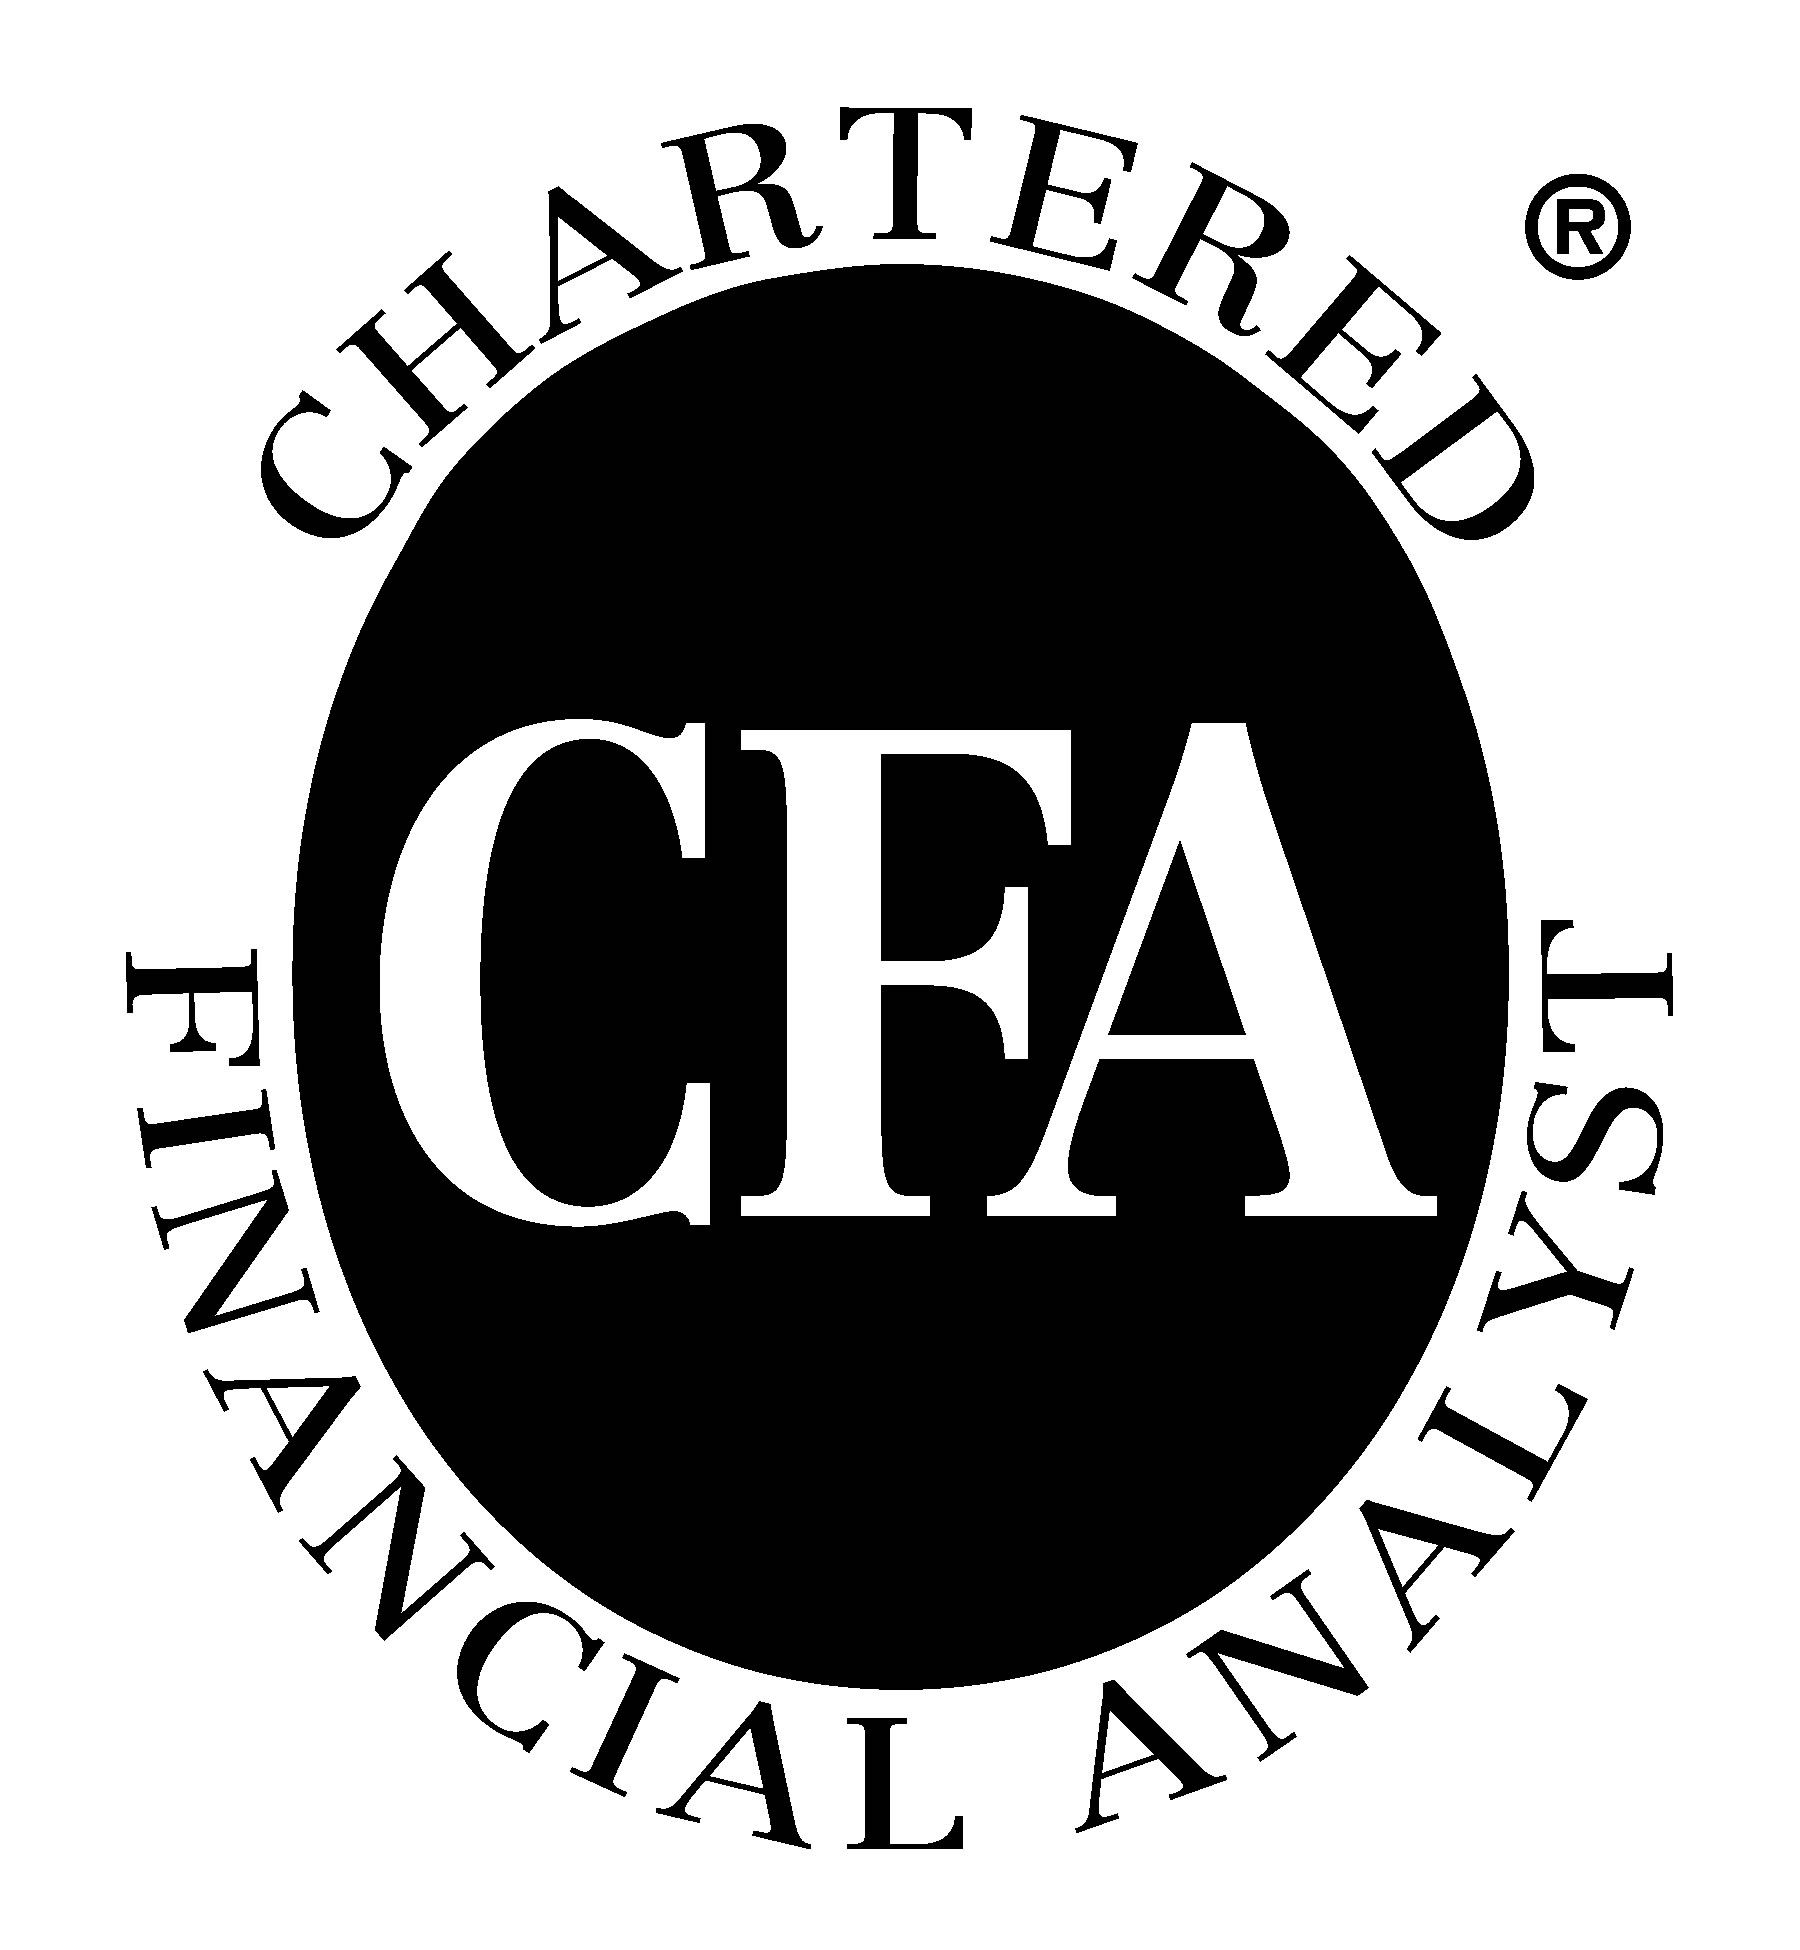 Cfa Chartered Financial Analyst  One Day